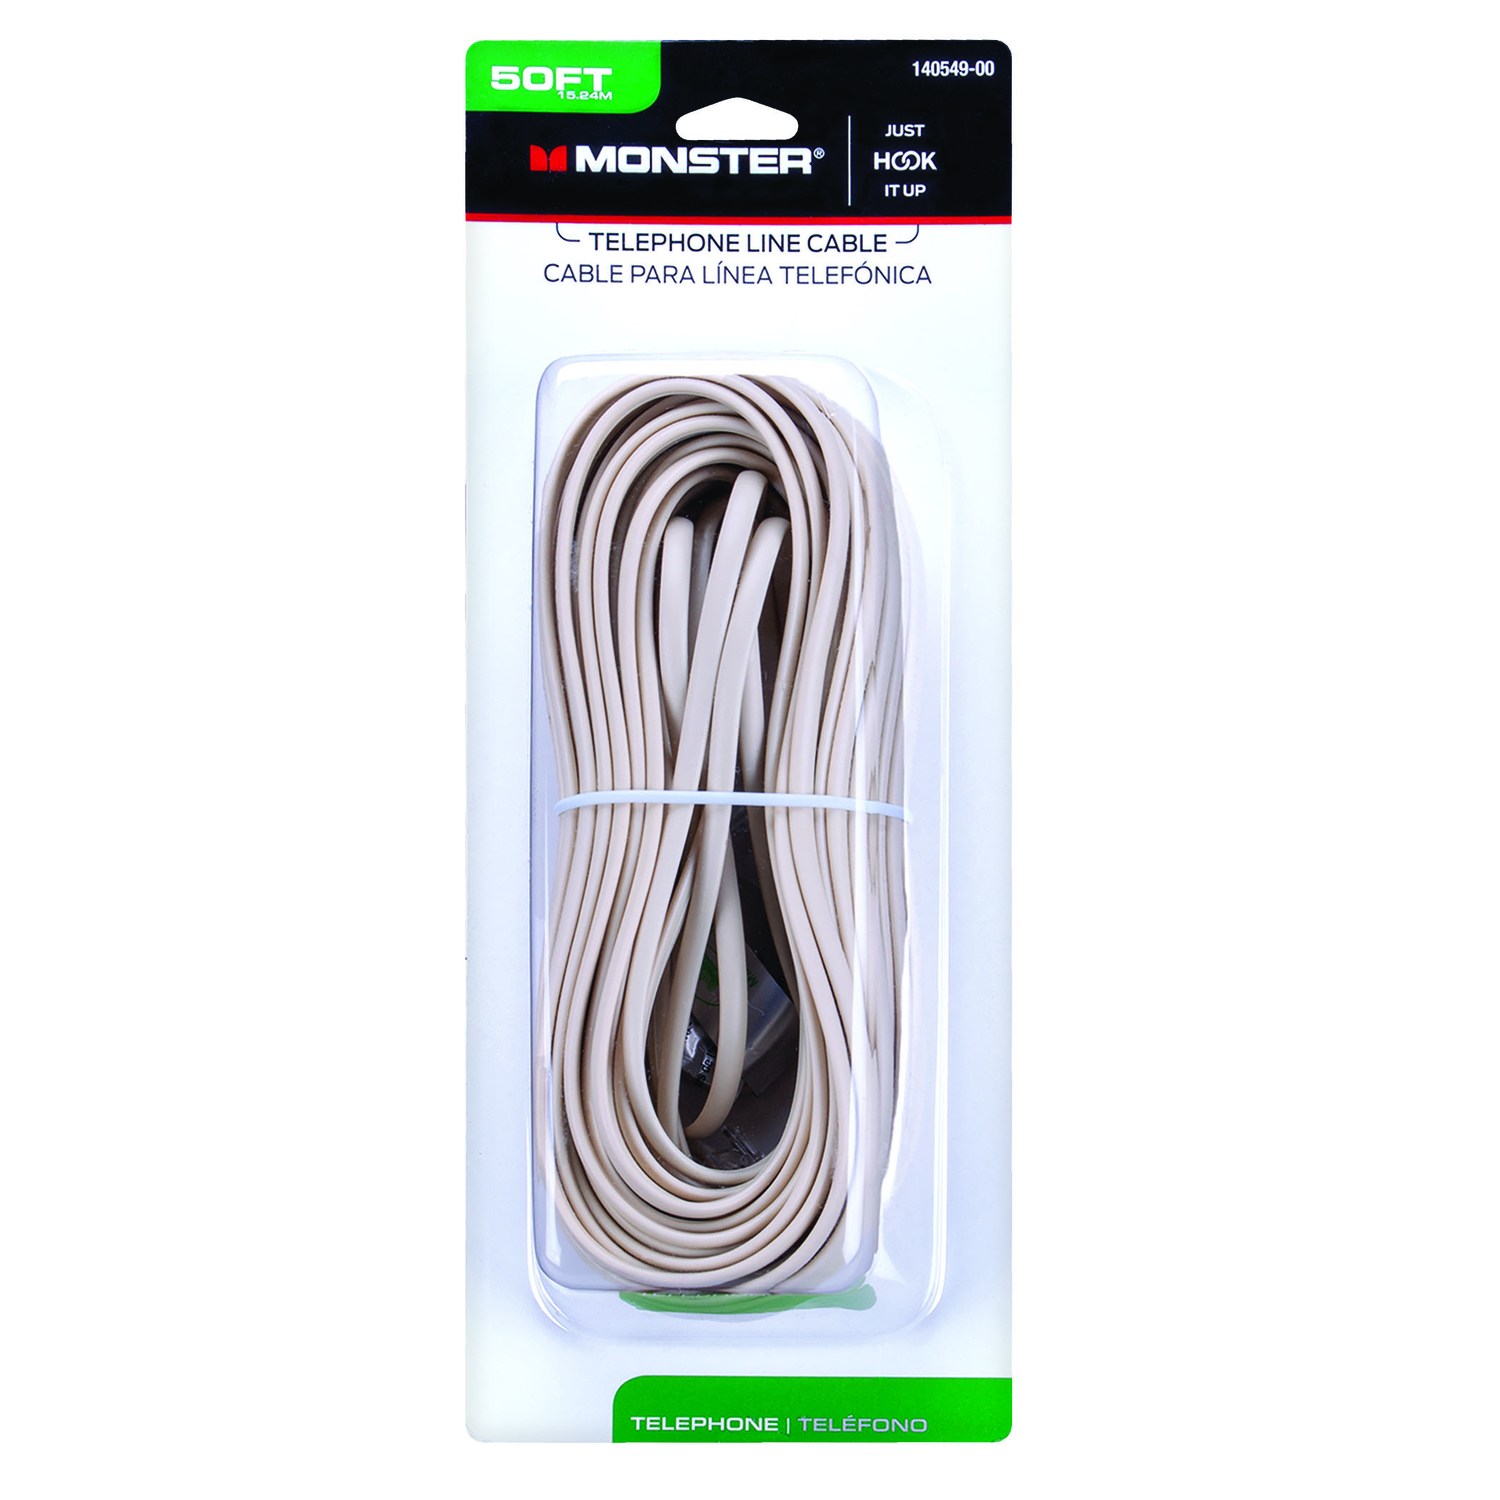 Monster Cable  50 ft. L Modular Telephone Line Cable  Ivory